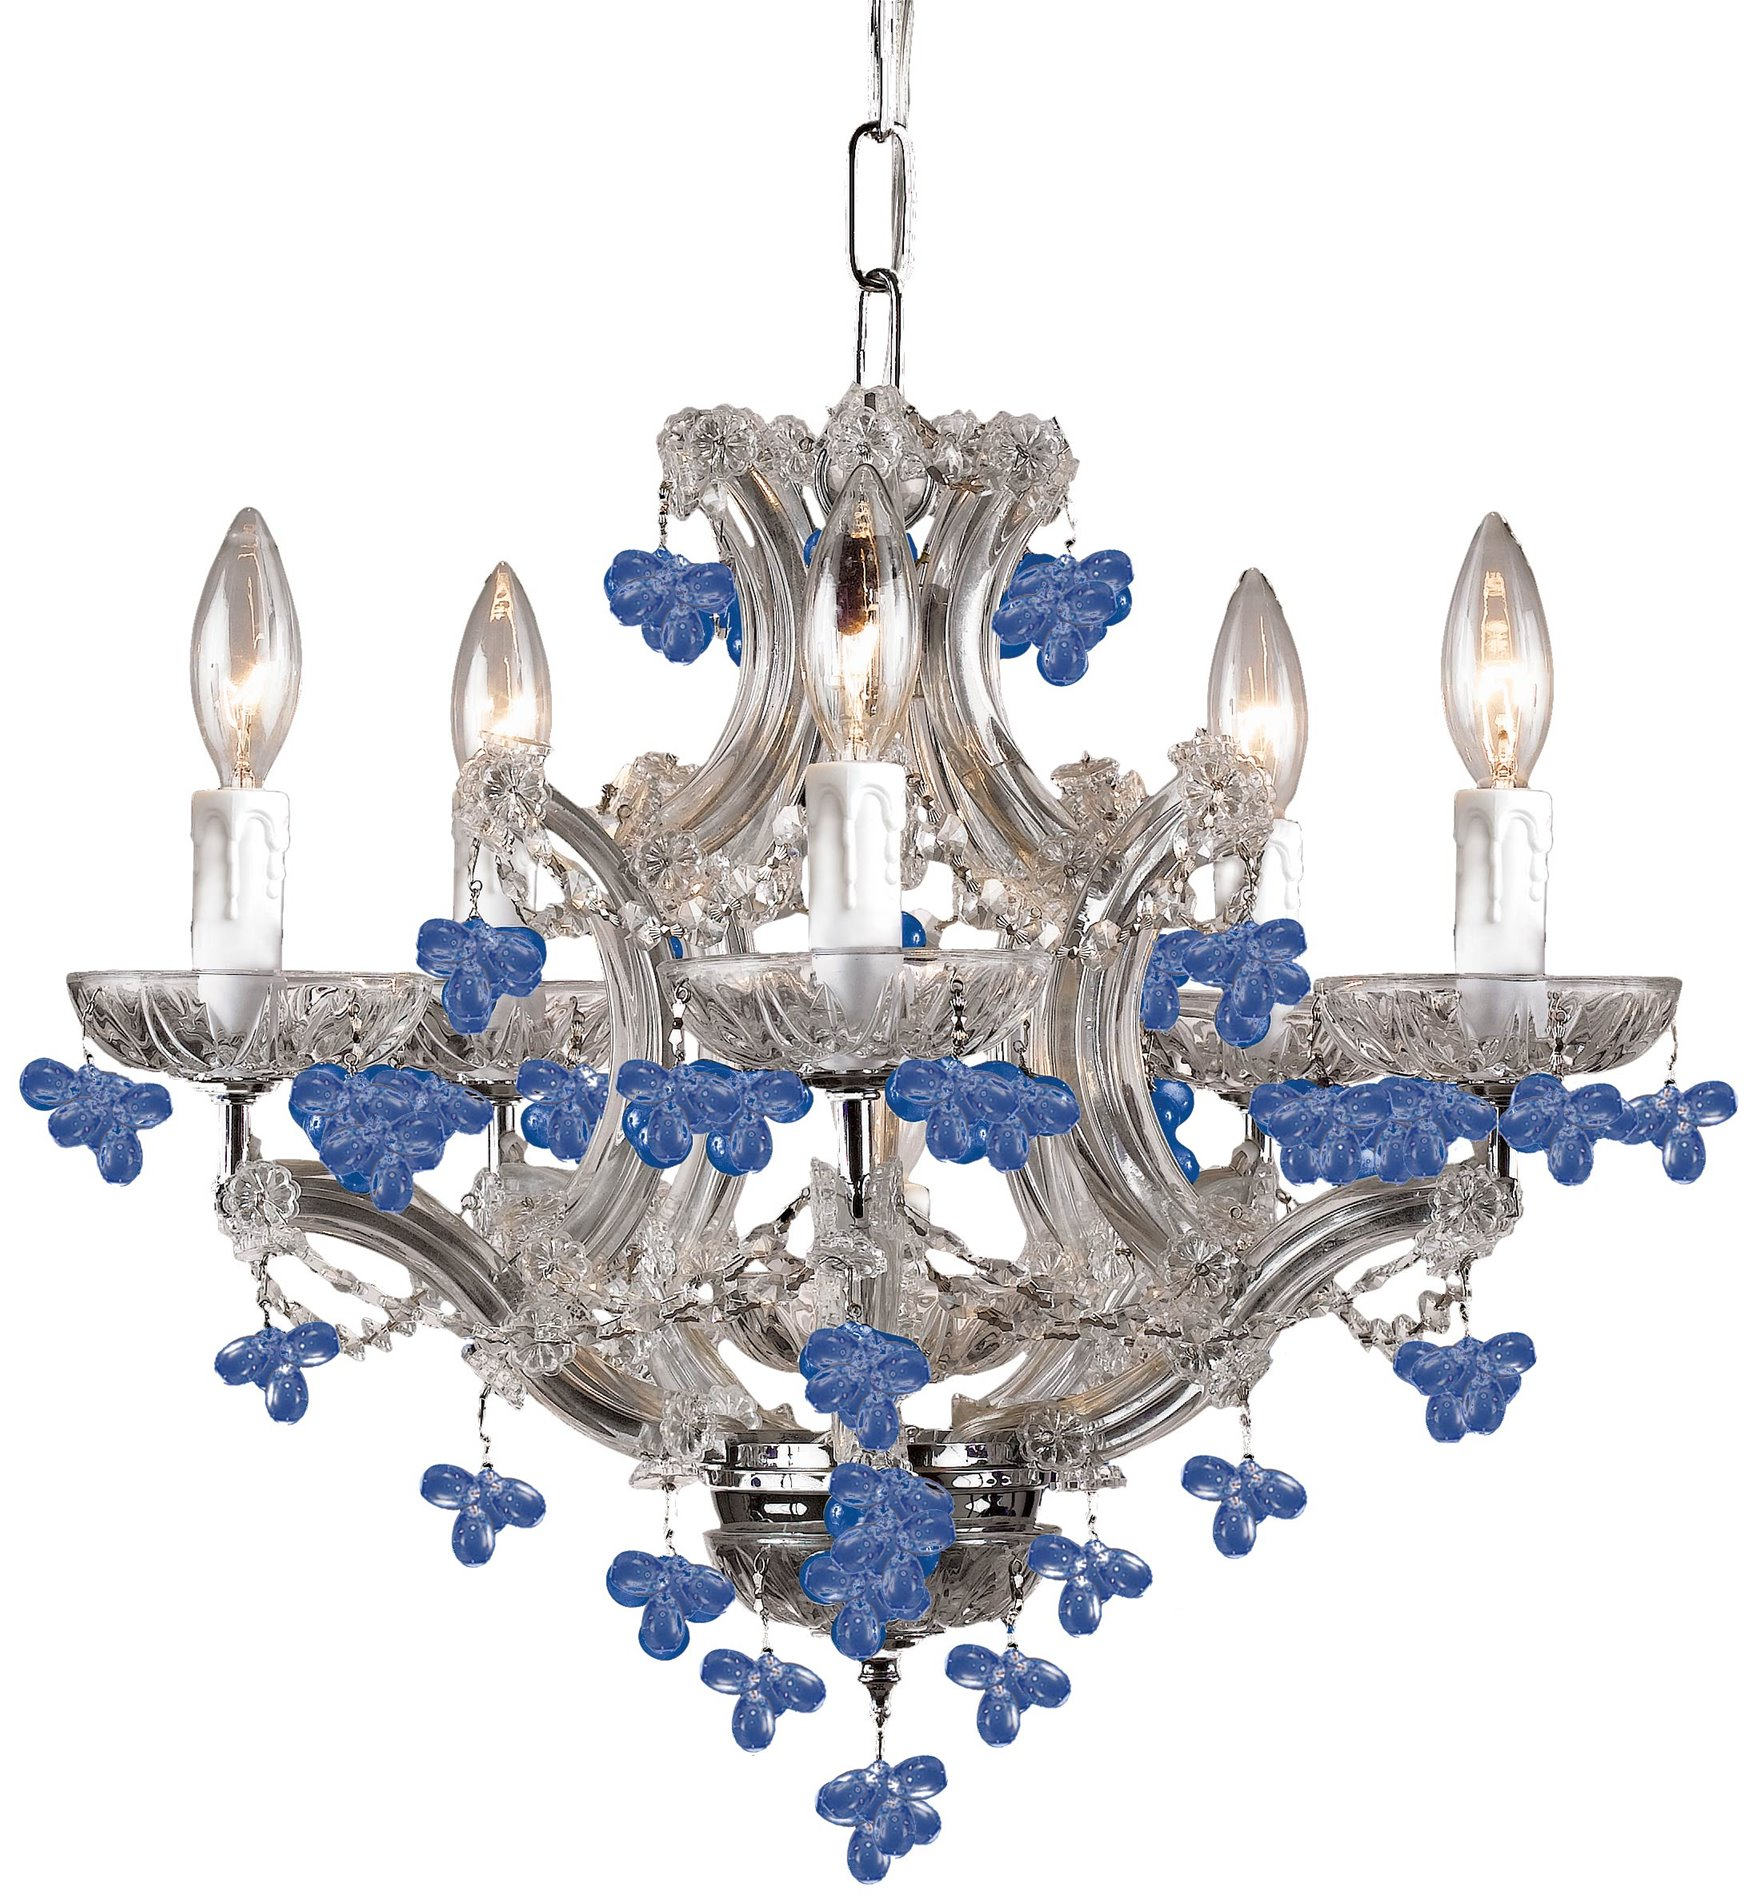 Crystorama 4305 Ch Blue Hot Deal Traditional Chandelier